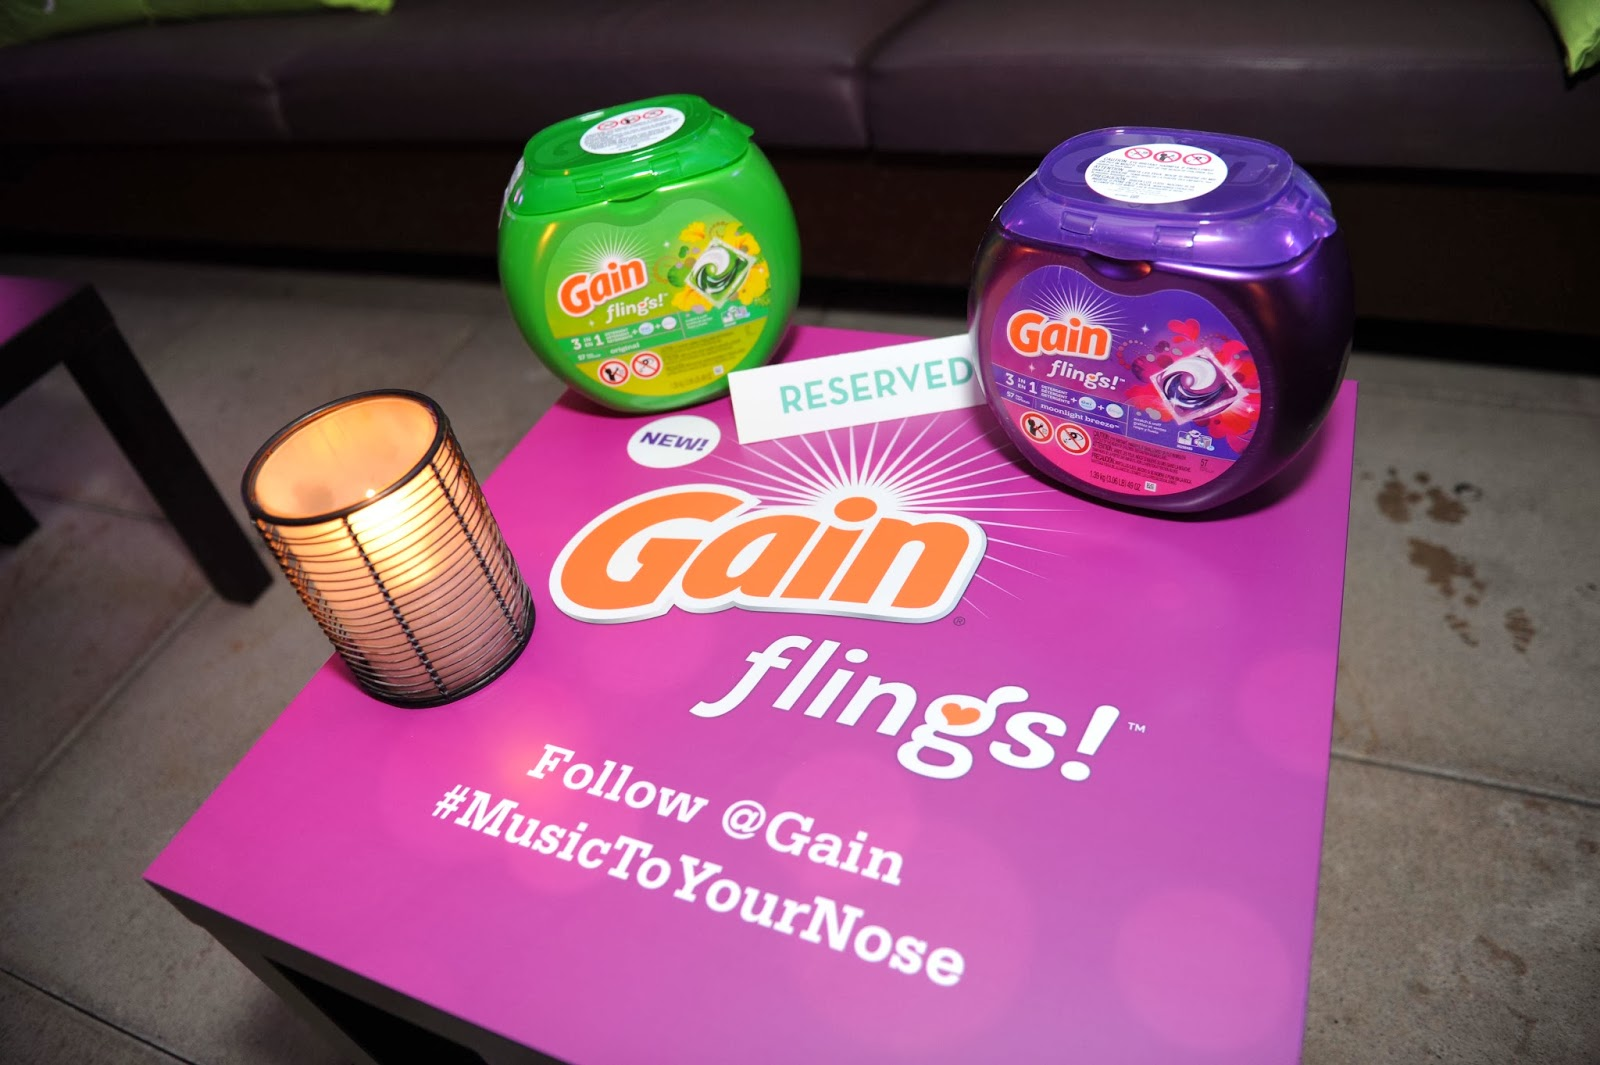 Gain Flings!, @Gain, #MusictoYourNose, #MusicaParaTuNariz, Table Display Empire Hotel New York City